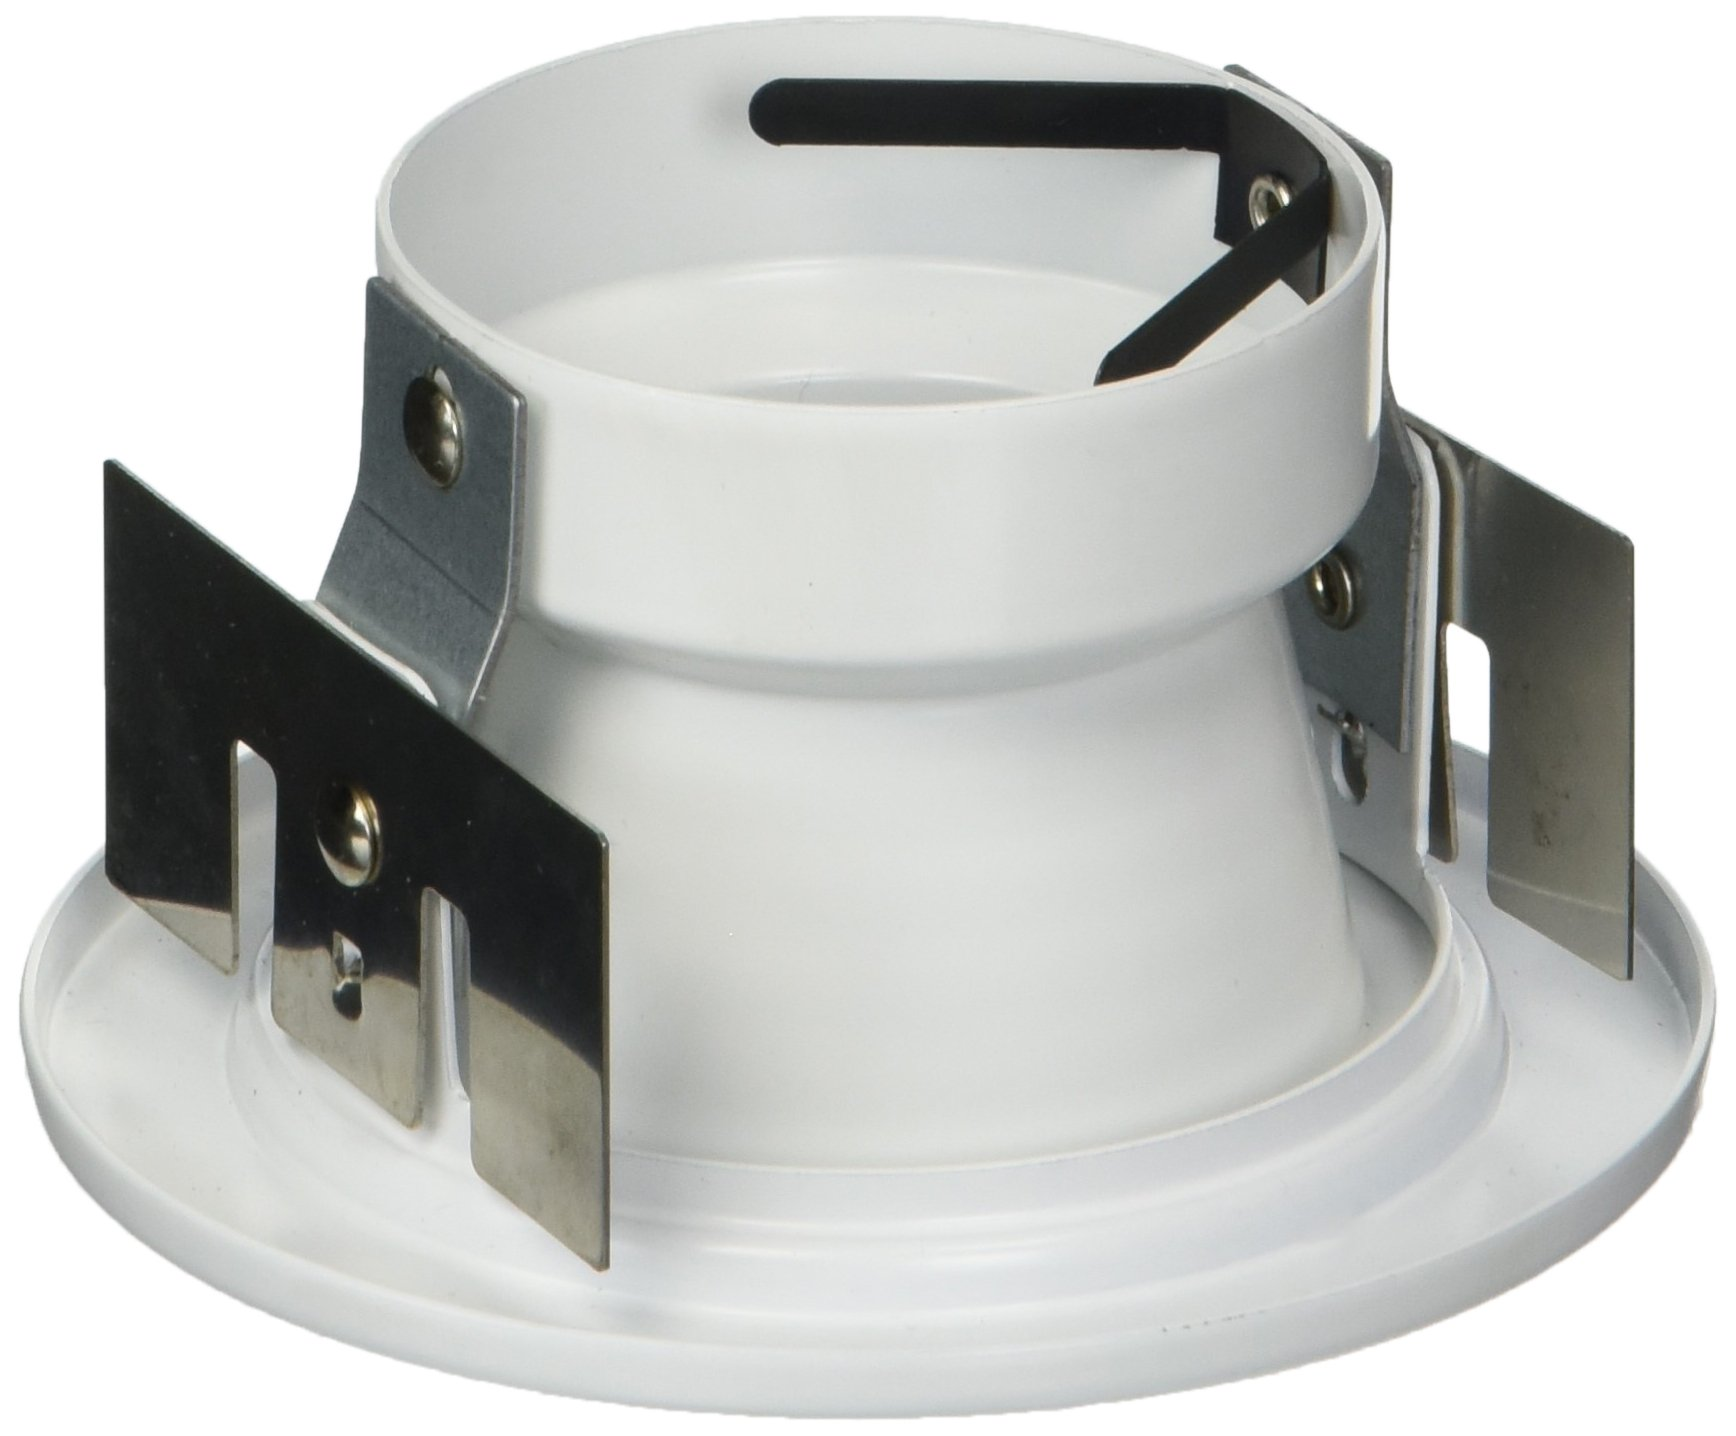 WAC Lighting HR-834-WT/WT Recessed Low Voltage Trim Step Baffle